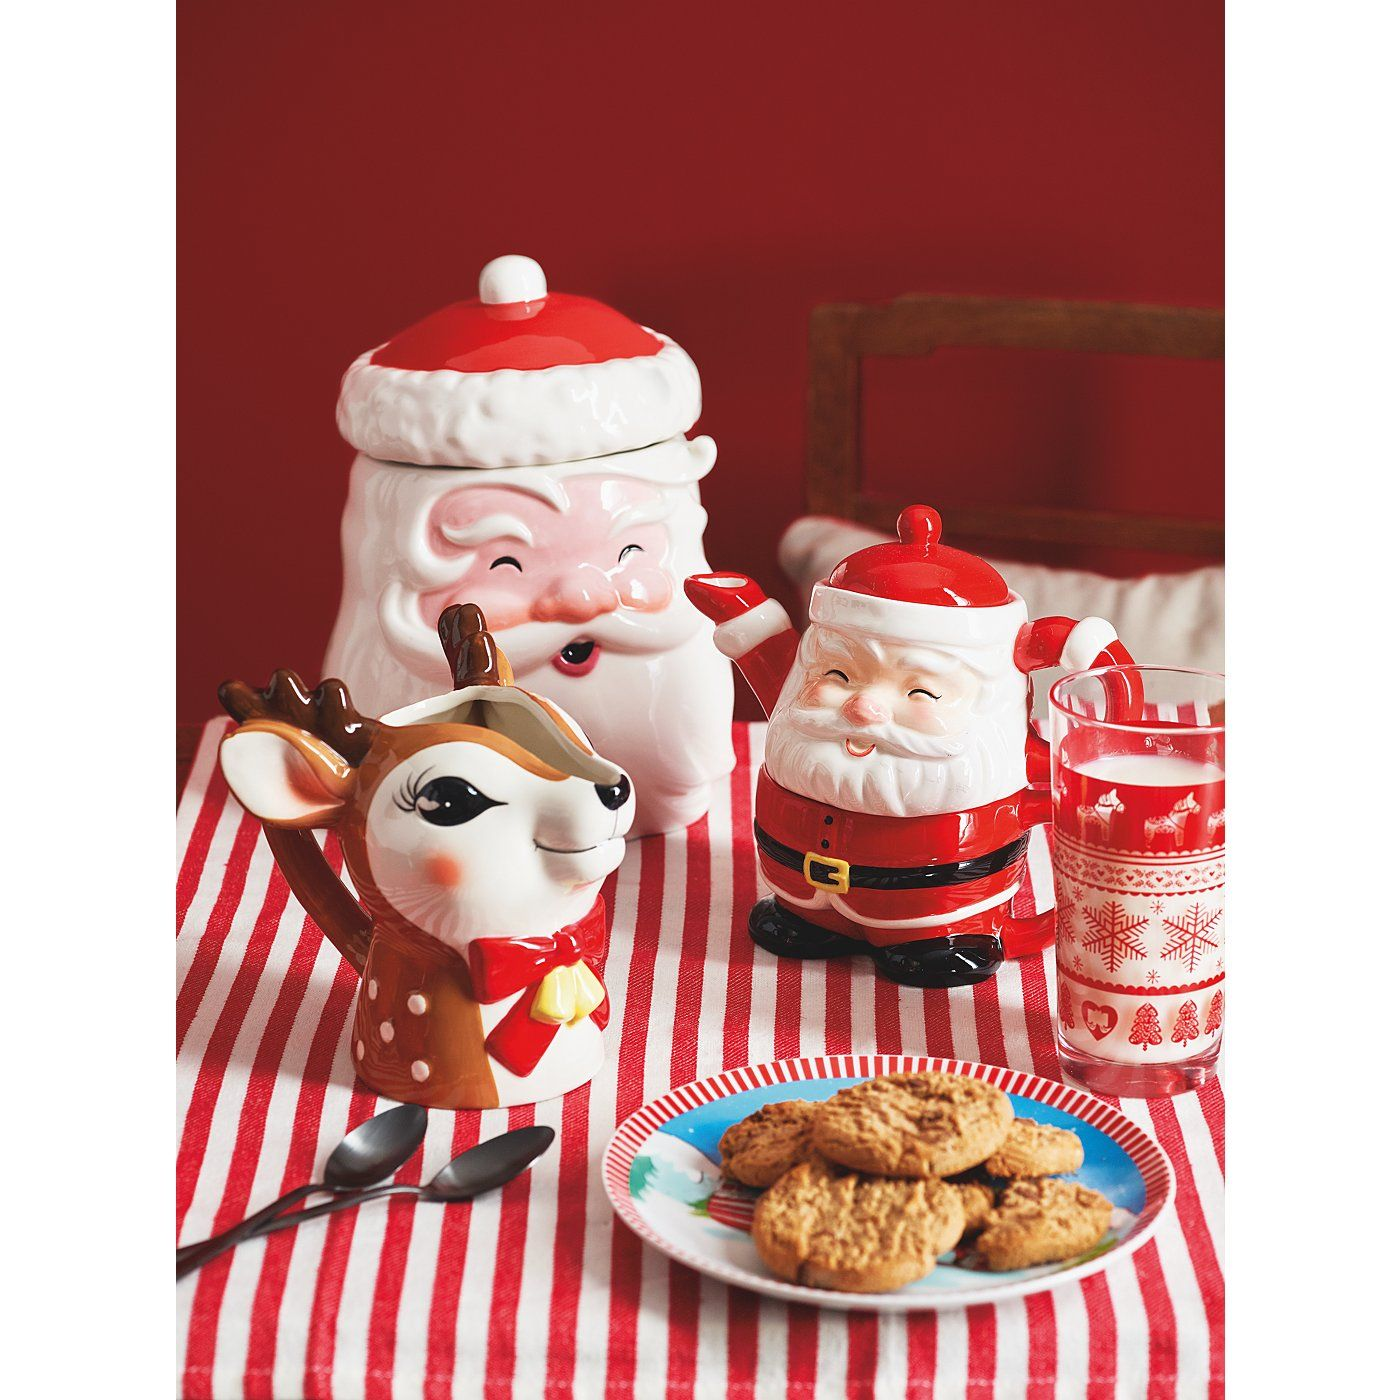 Christmas Tableware Range Read Reviews And Buy Online At George At Asda Shop From Our Latest Range In Home Gard Christmas Tableware Xmas Pictures Christmas